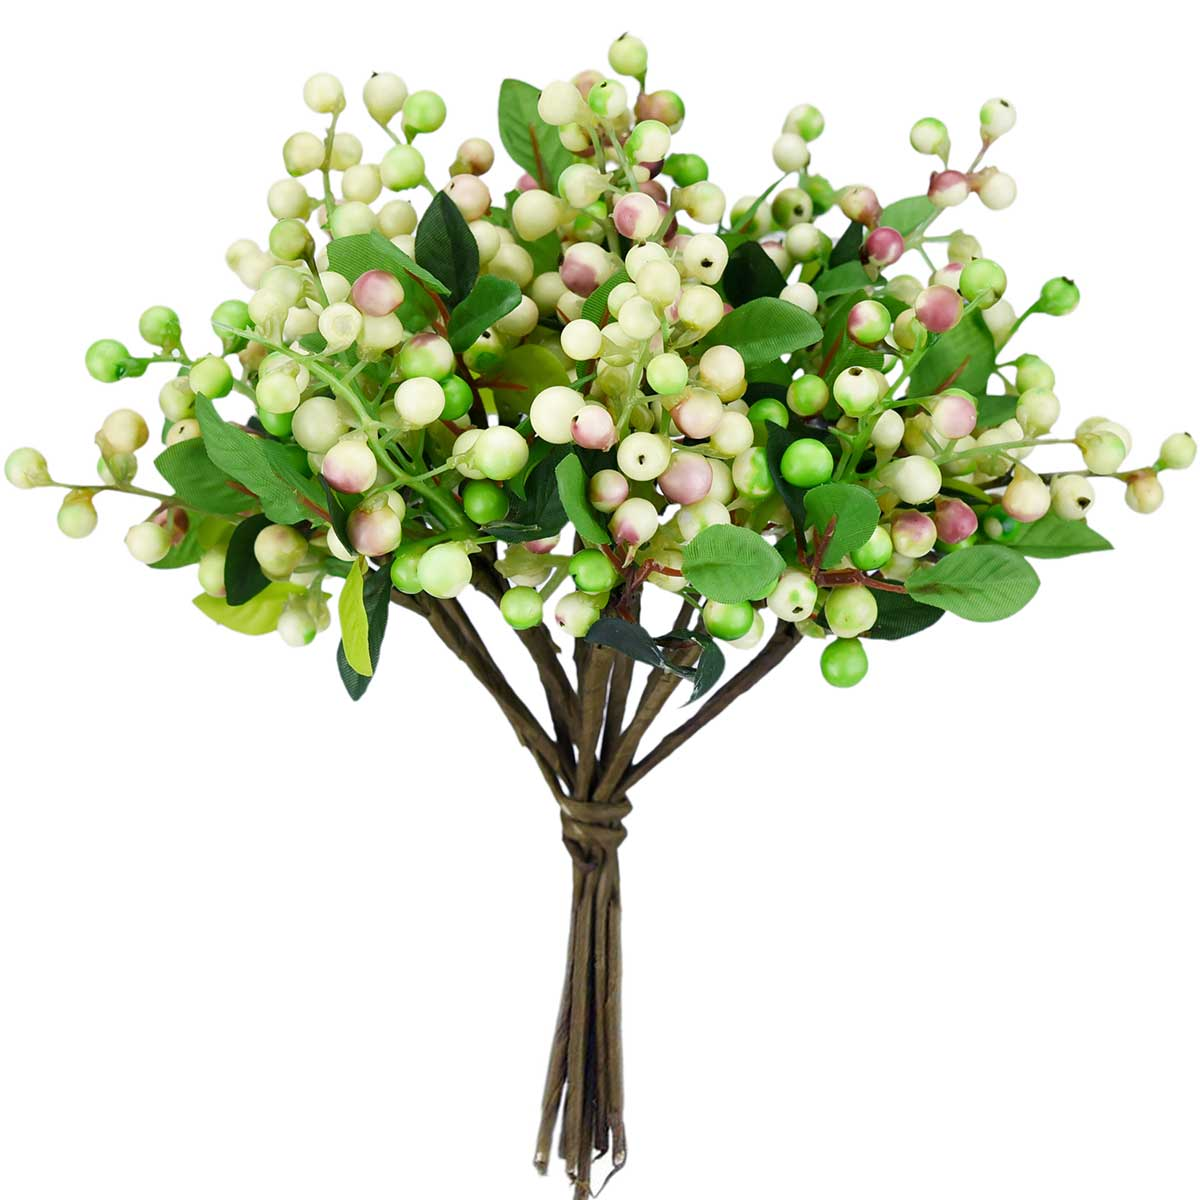 10 Stems Artificial Pink Berry Bouquet 9.8 Inches (25cm)